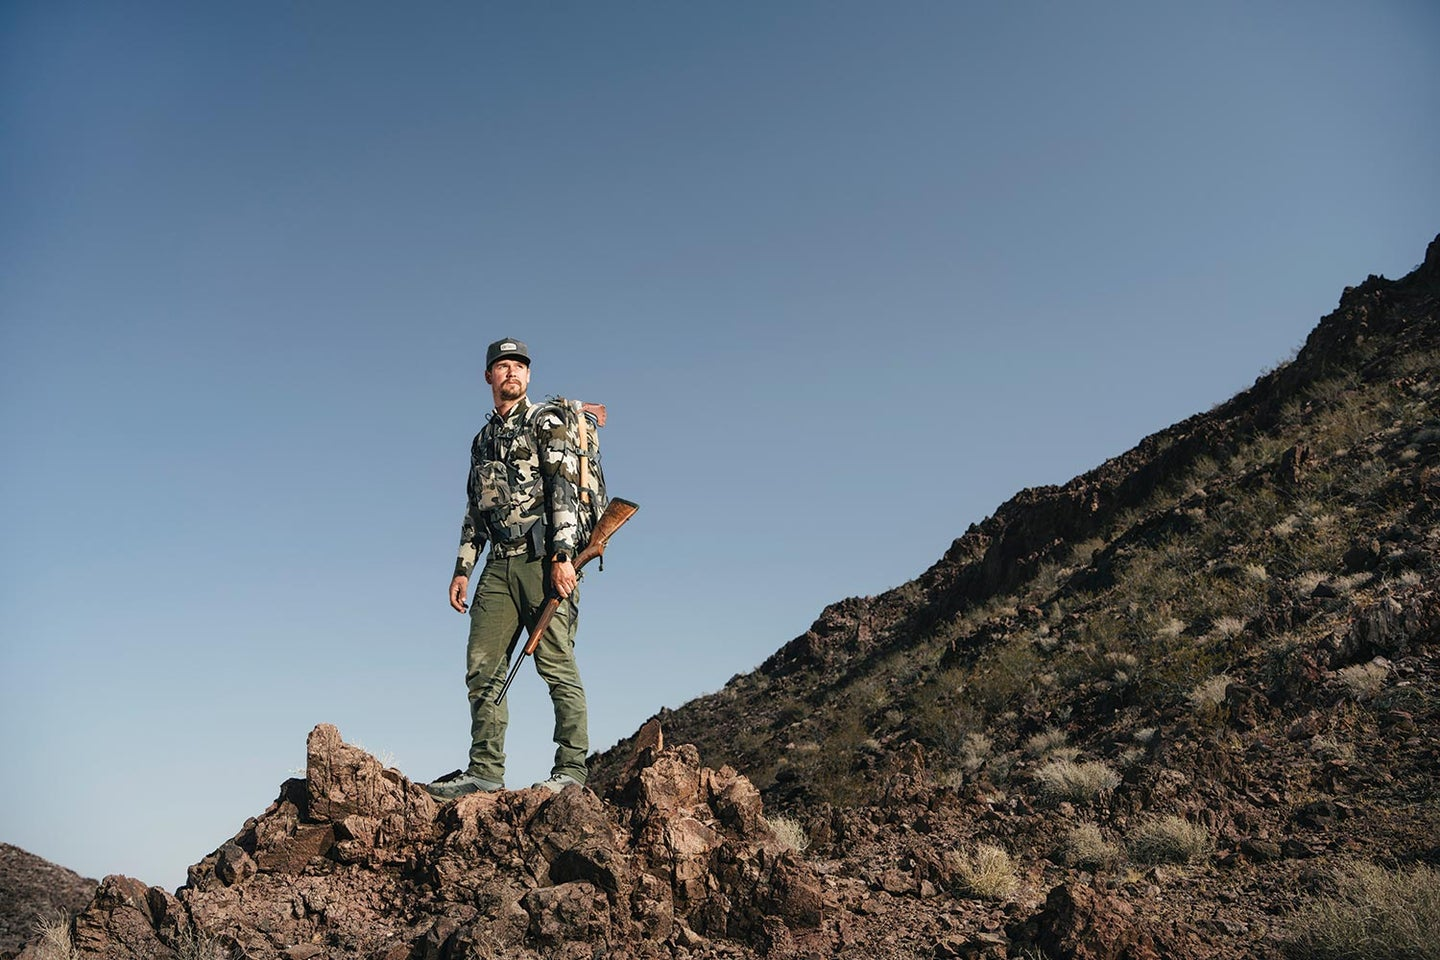 The author in his element—the desert mountains of Southern California.